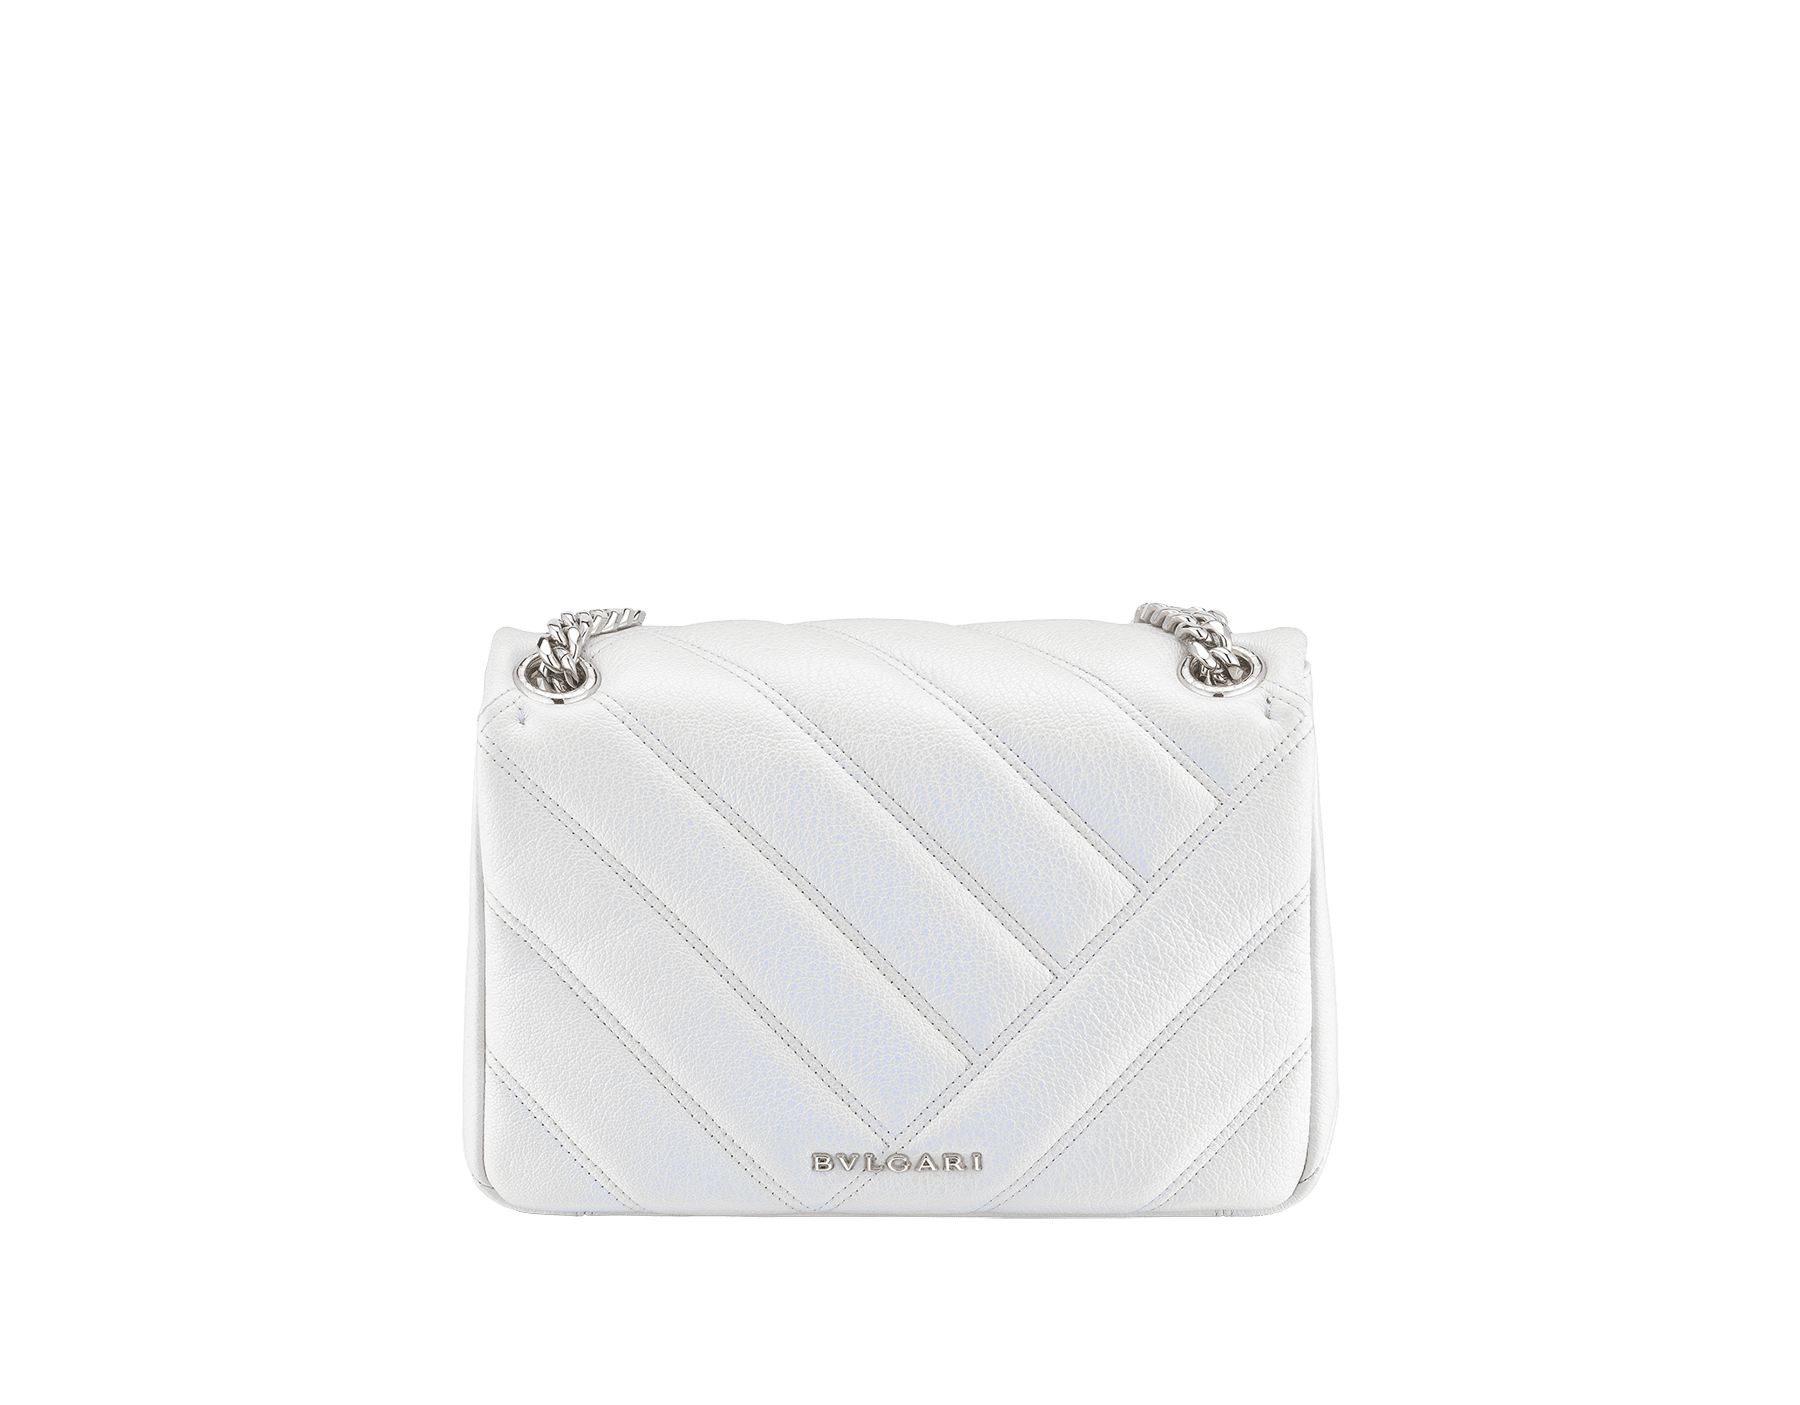 """Serpenti Cabochon"" shoulder bag in soft quilted white agate goatskin with a pearled, iridescent effect and a graphic motif. Brass palladium plated tempting snake head closure in matte black and shiny white enamel and black onyx eyes. 290236 image 3"